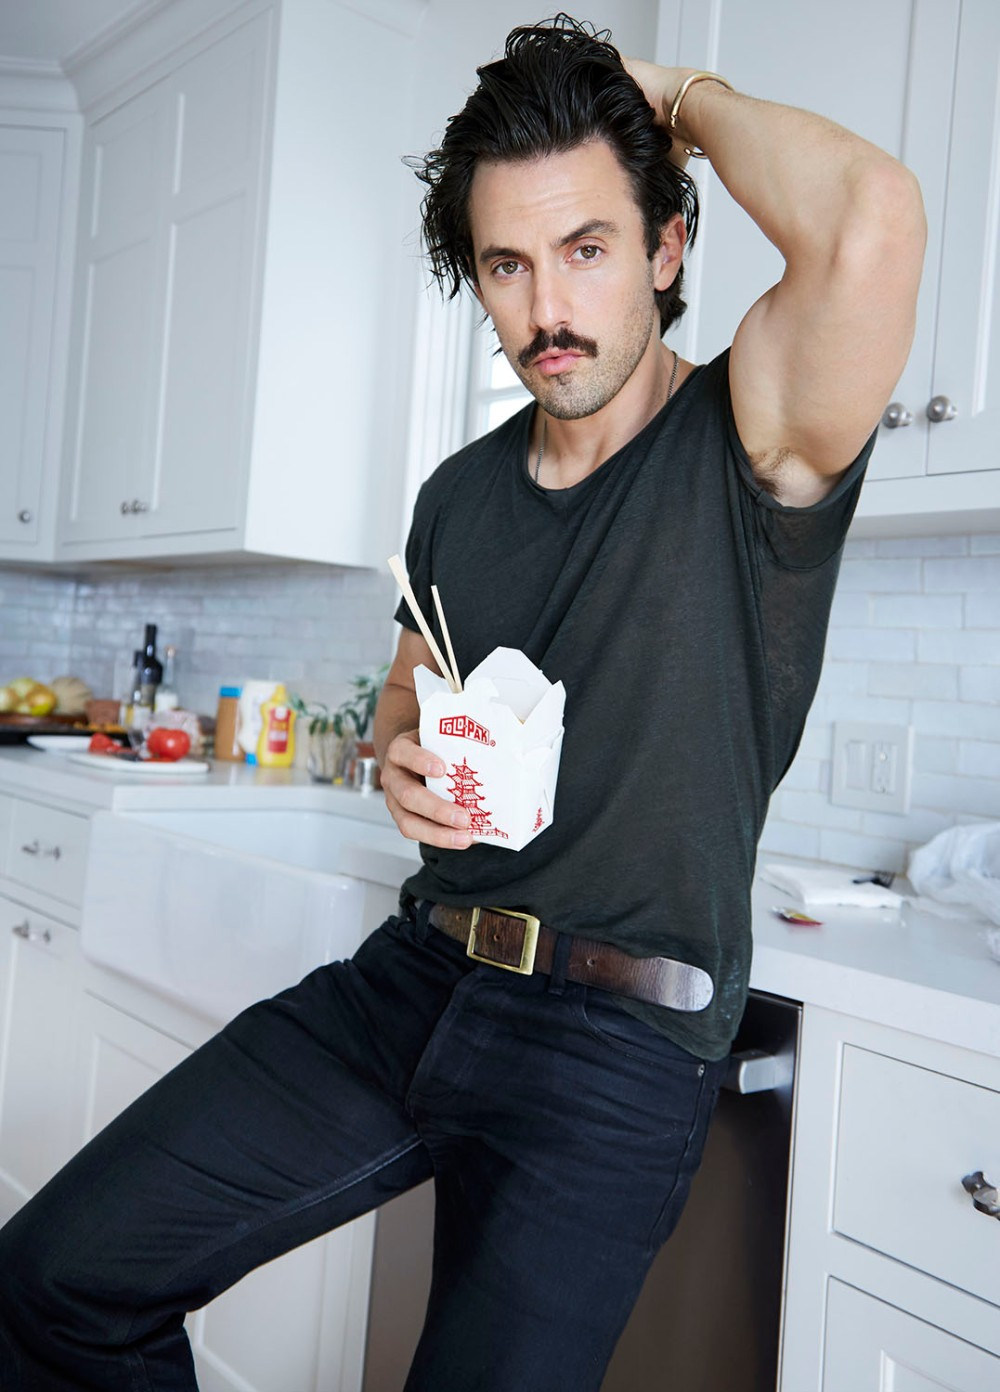 milo-ventimiglia-photographed-by-mei-tao-sexiest-men-alive-people-magazine-2016